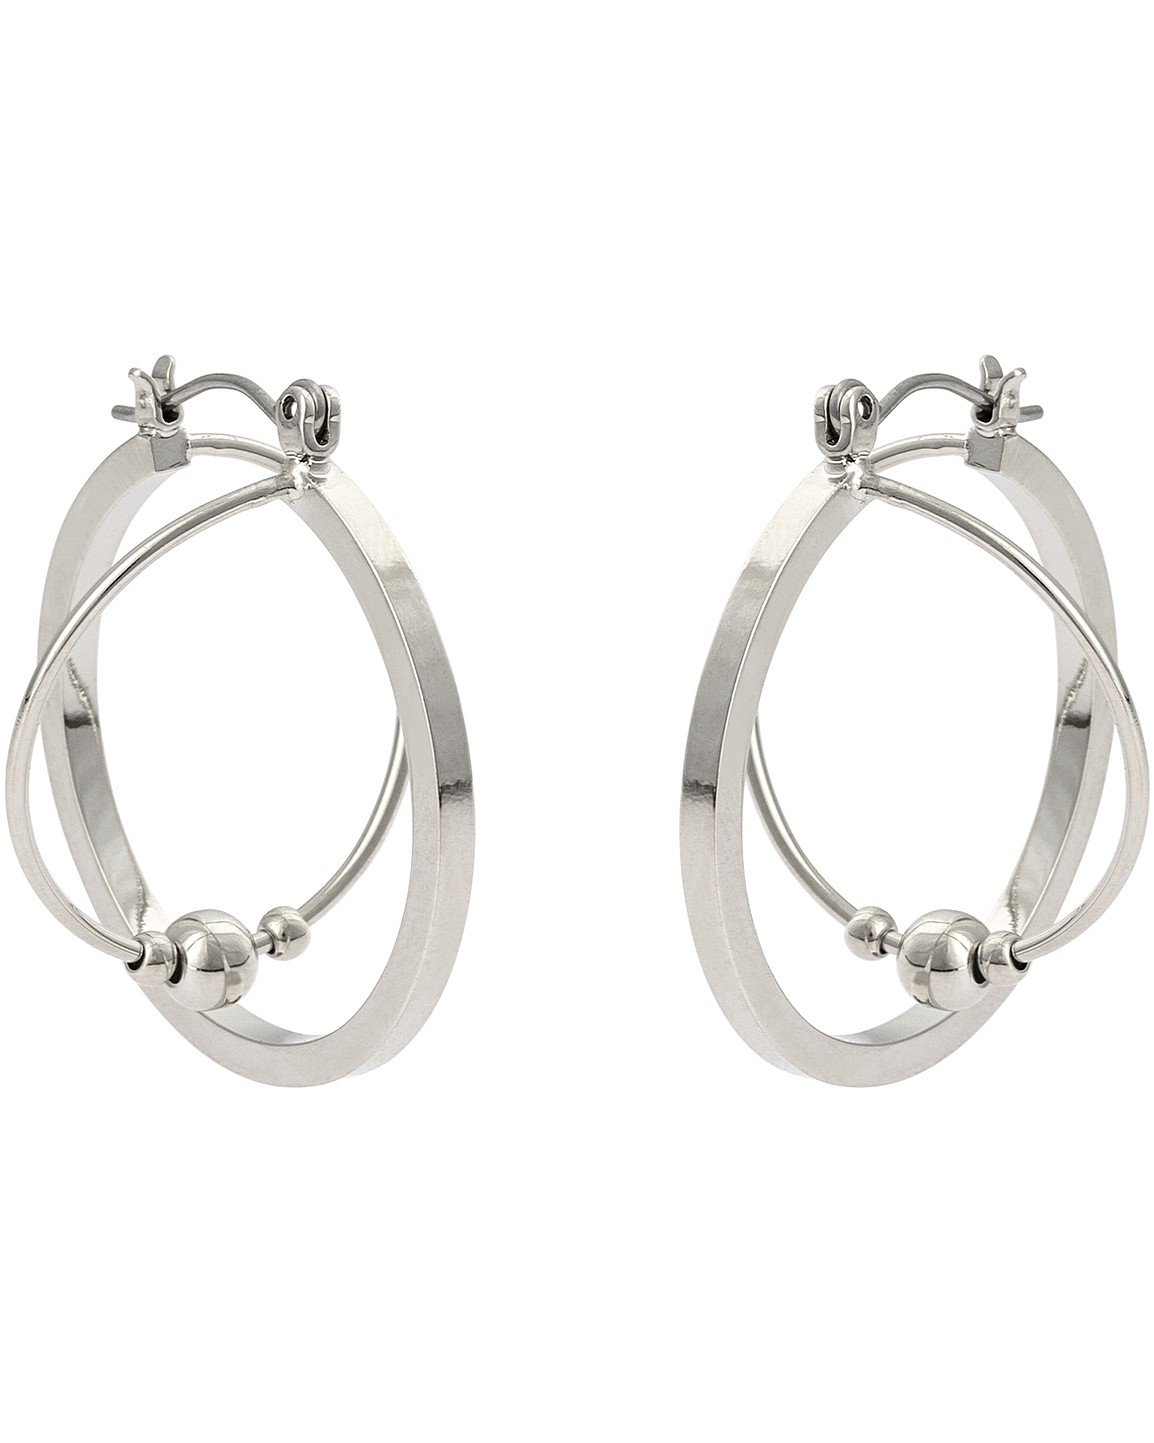 Geikie Twist Bead Hoop Earrings